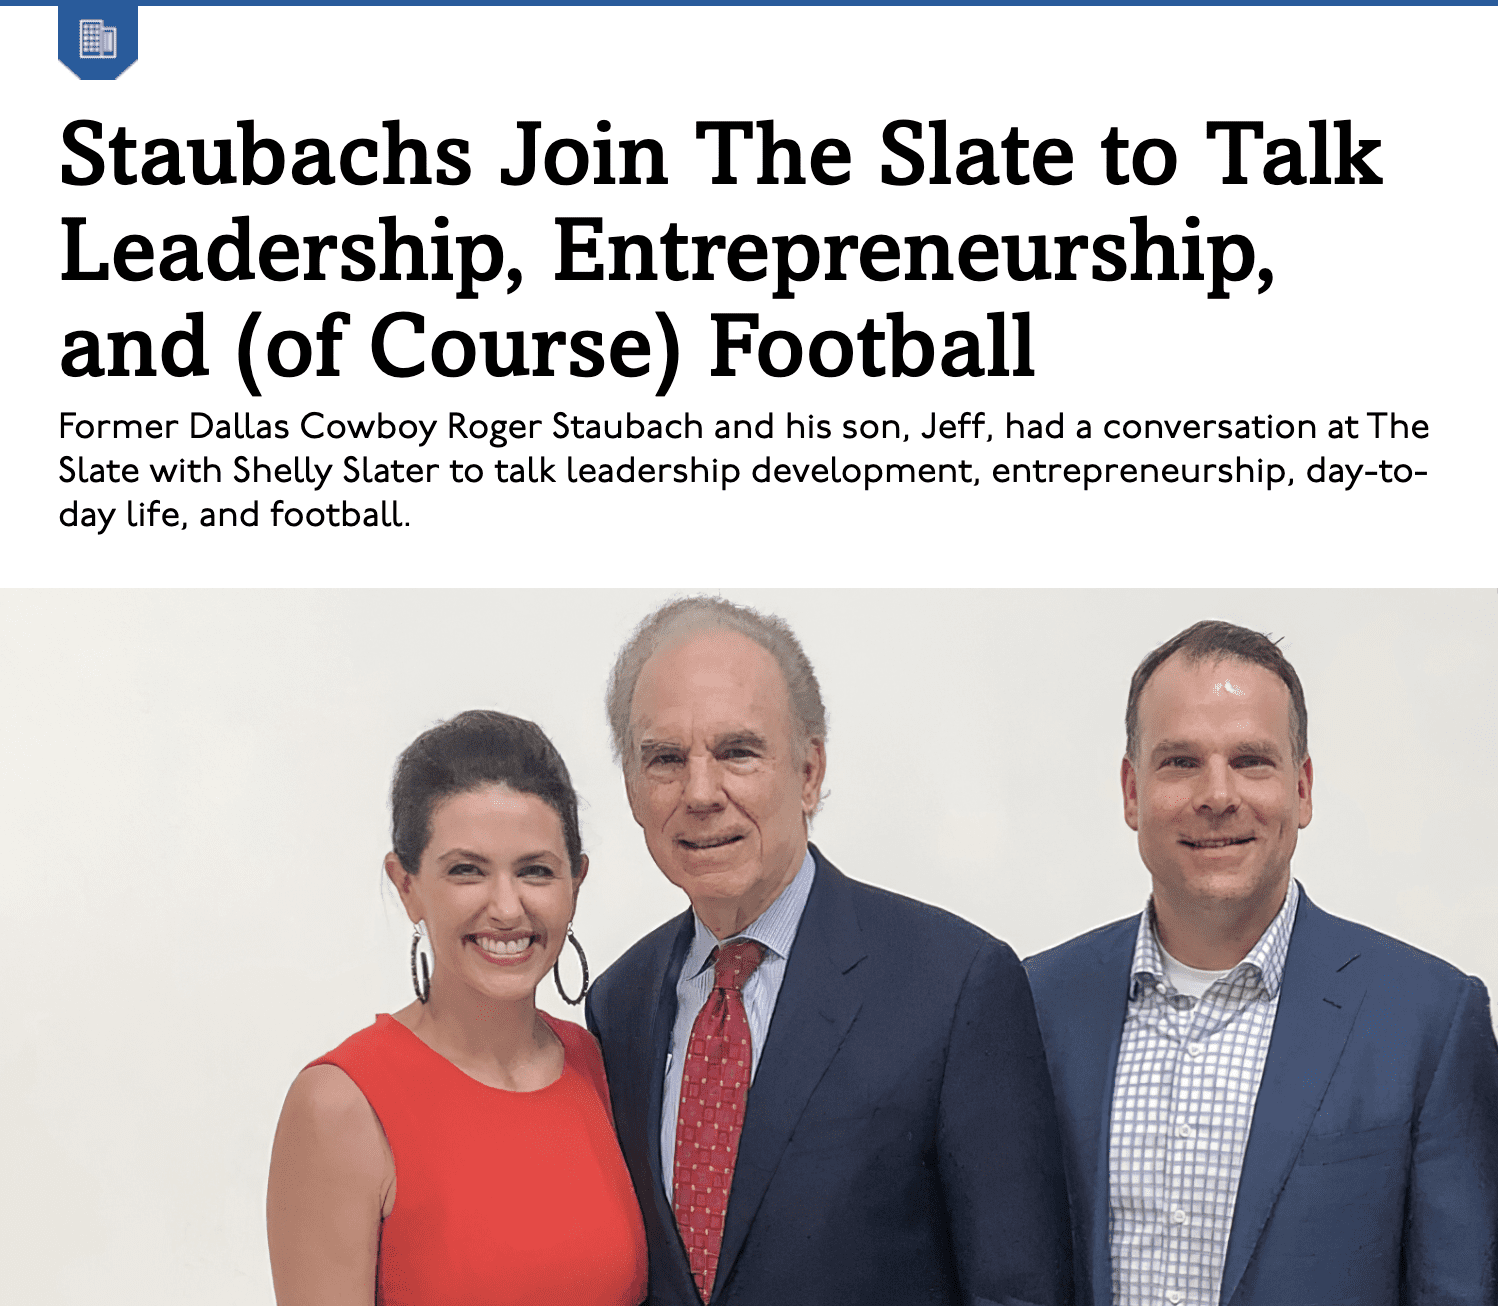 Staubachs Join The Slate to Talk Leadership, Entrepreneurship, and (of Course) Football | D Innovates